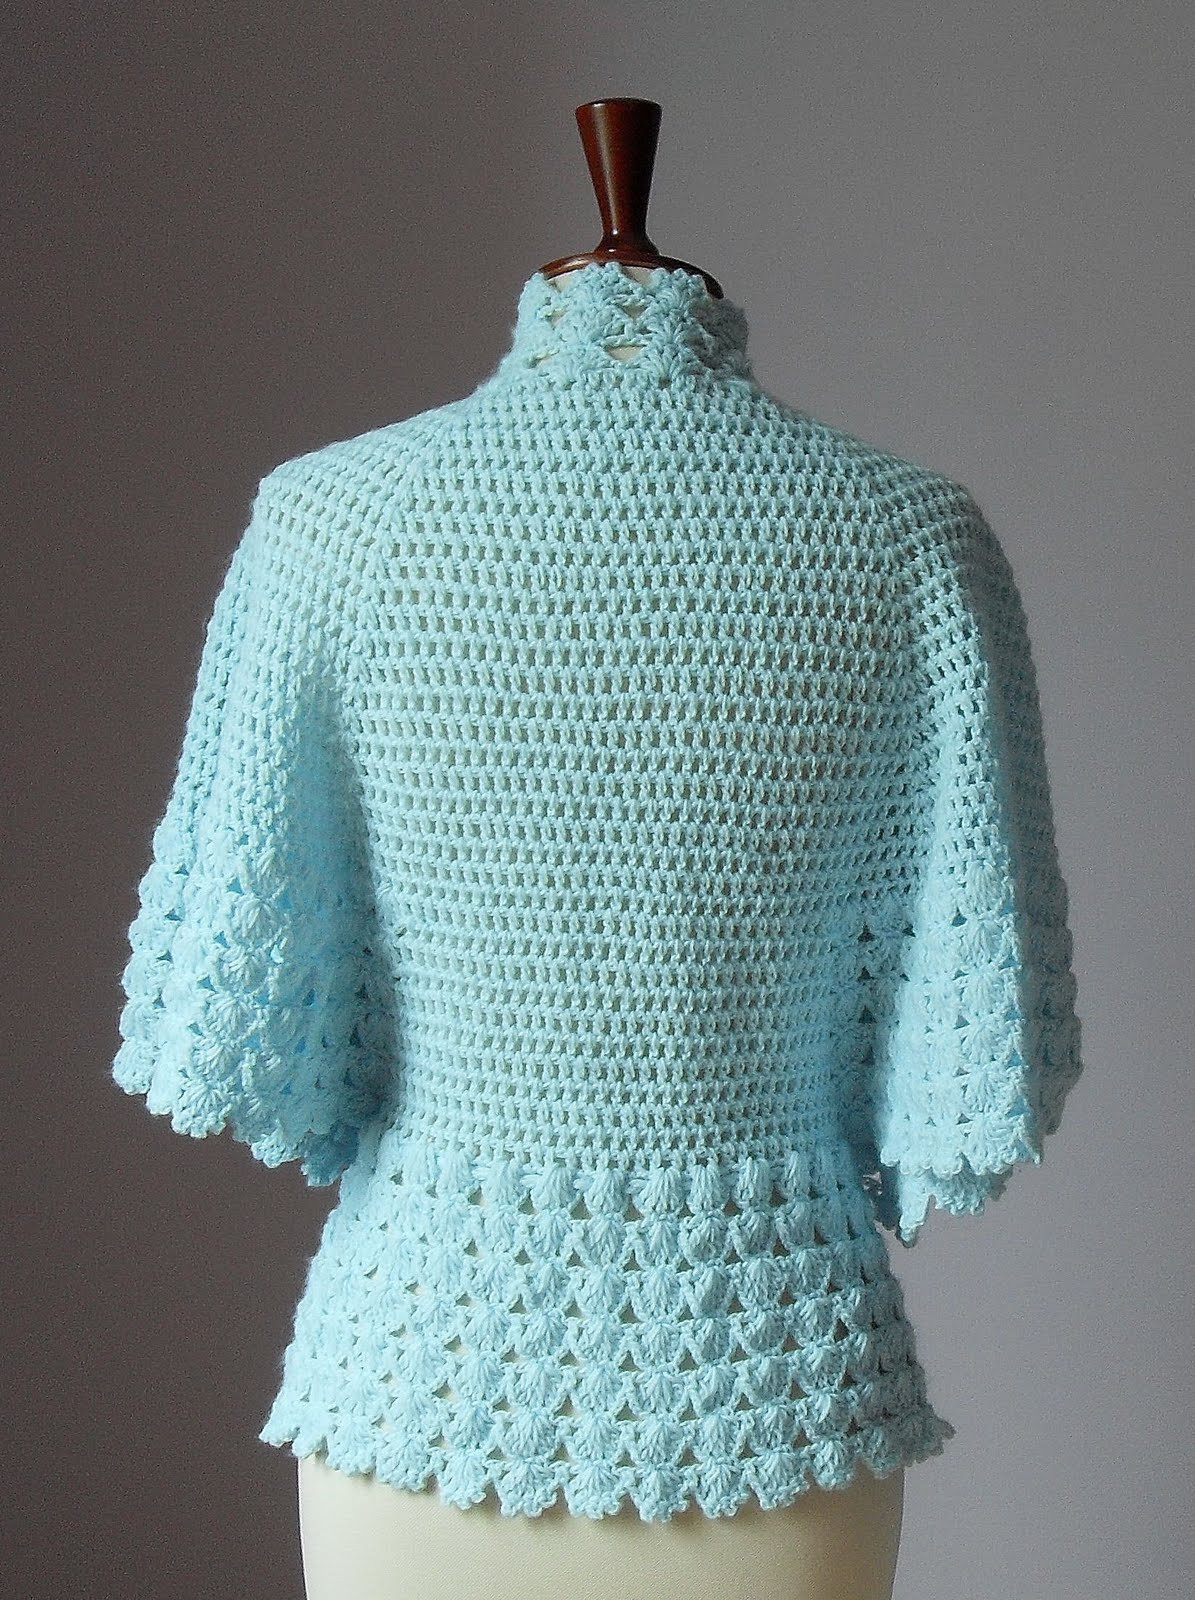 Inspirational Silvia66 Crocheted Bed Jacket or Light Cardigan Bed Jacket Pattern Of Luxury 42 Ideas Bed Jacket Pattern